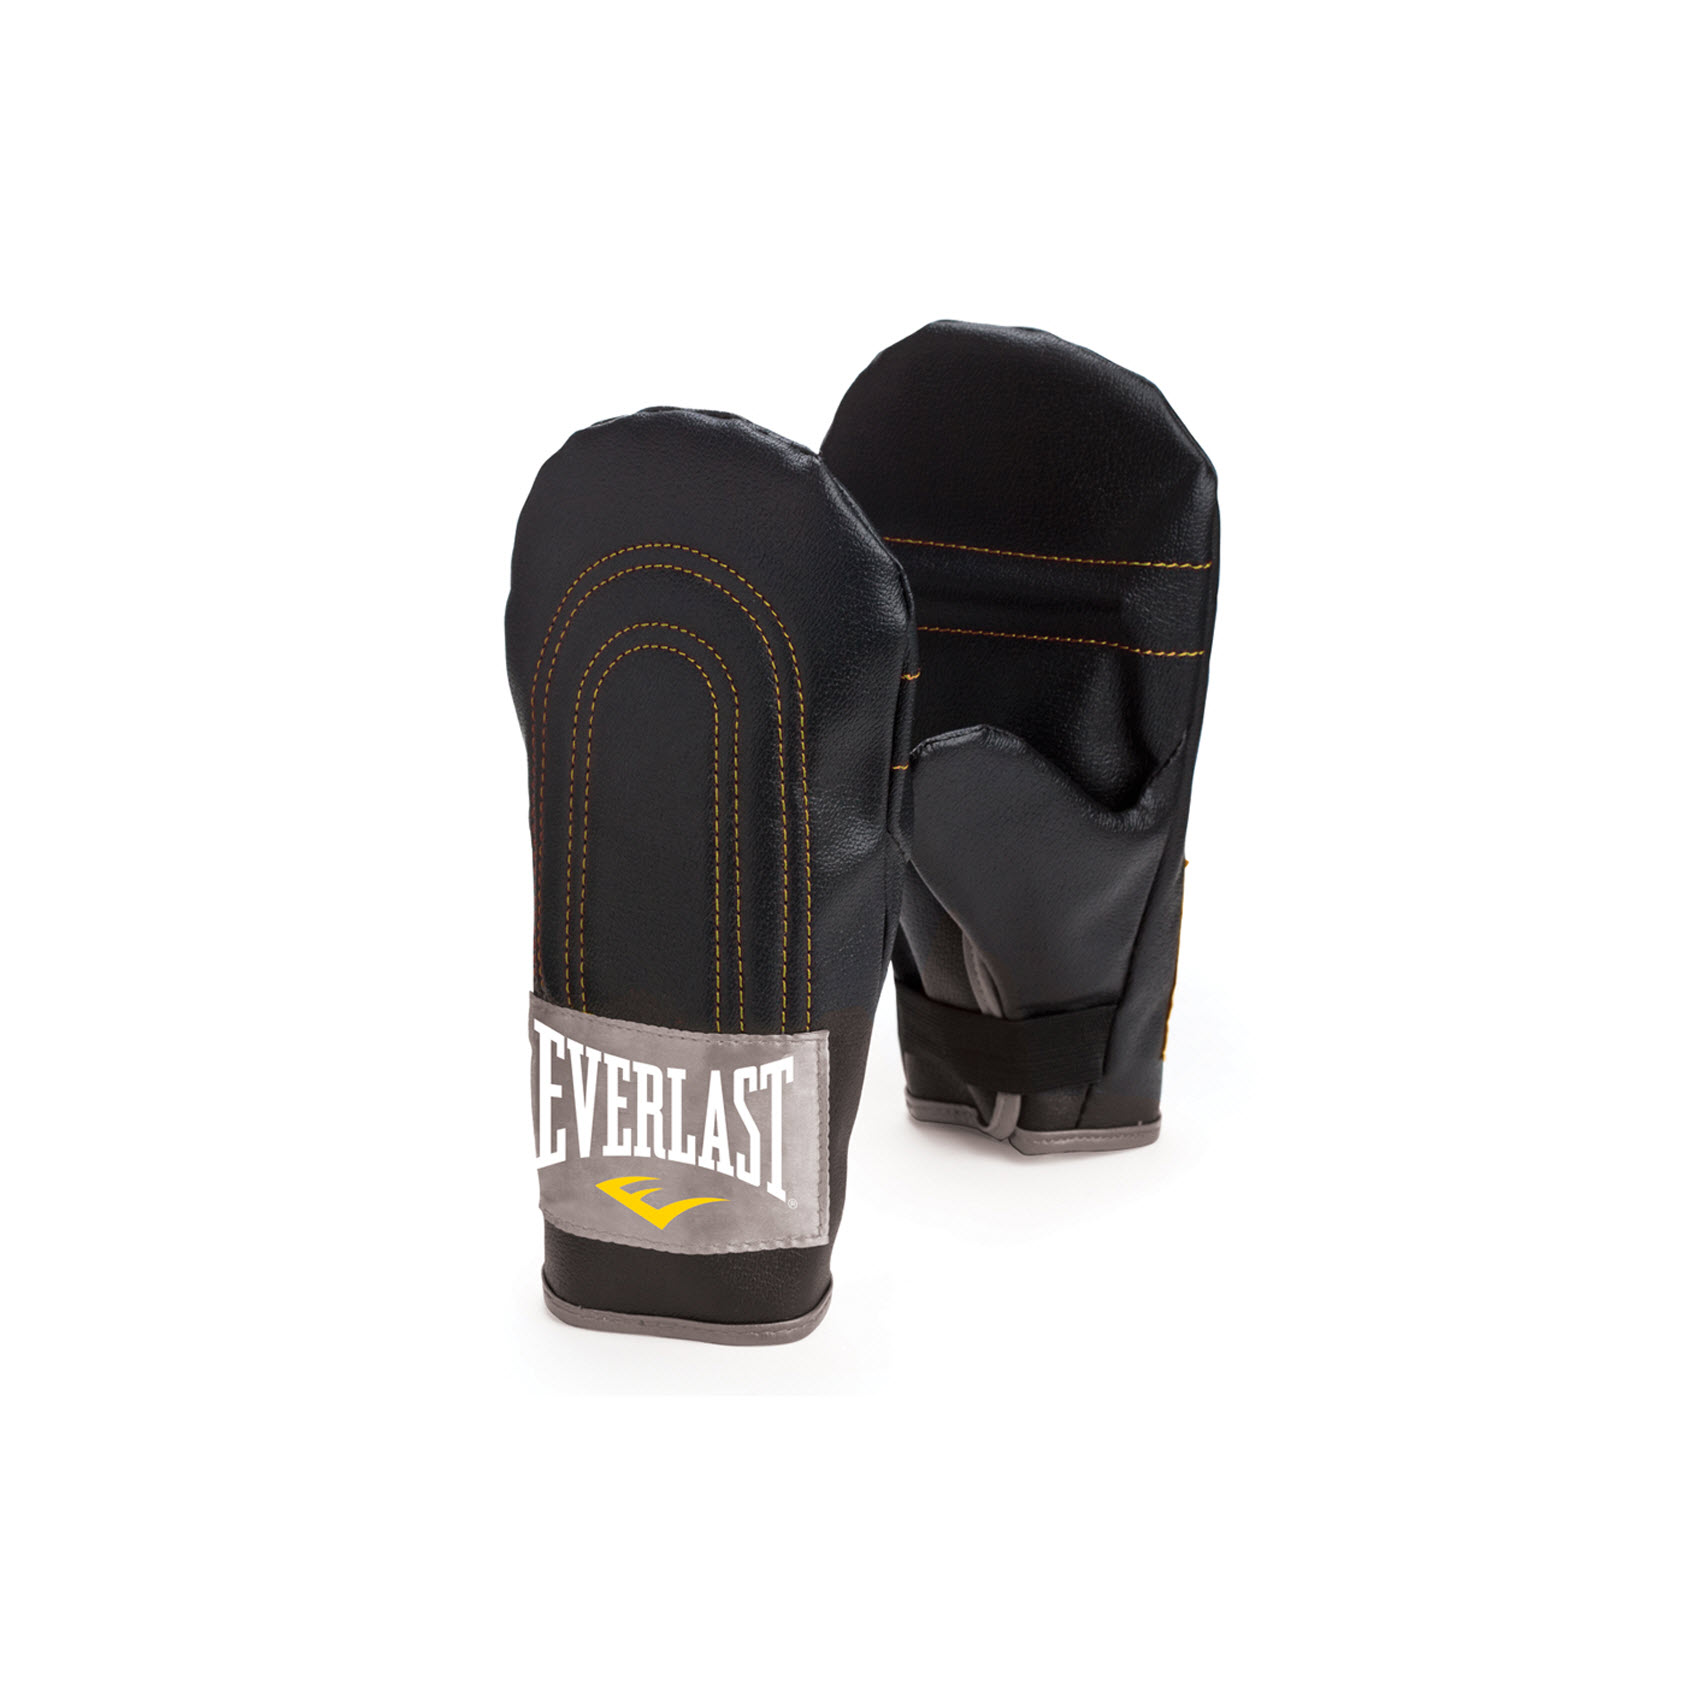 Everlast® 60 lb Heavy Bag Kit - Black